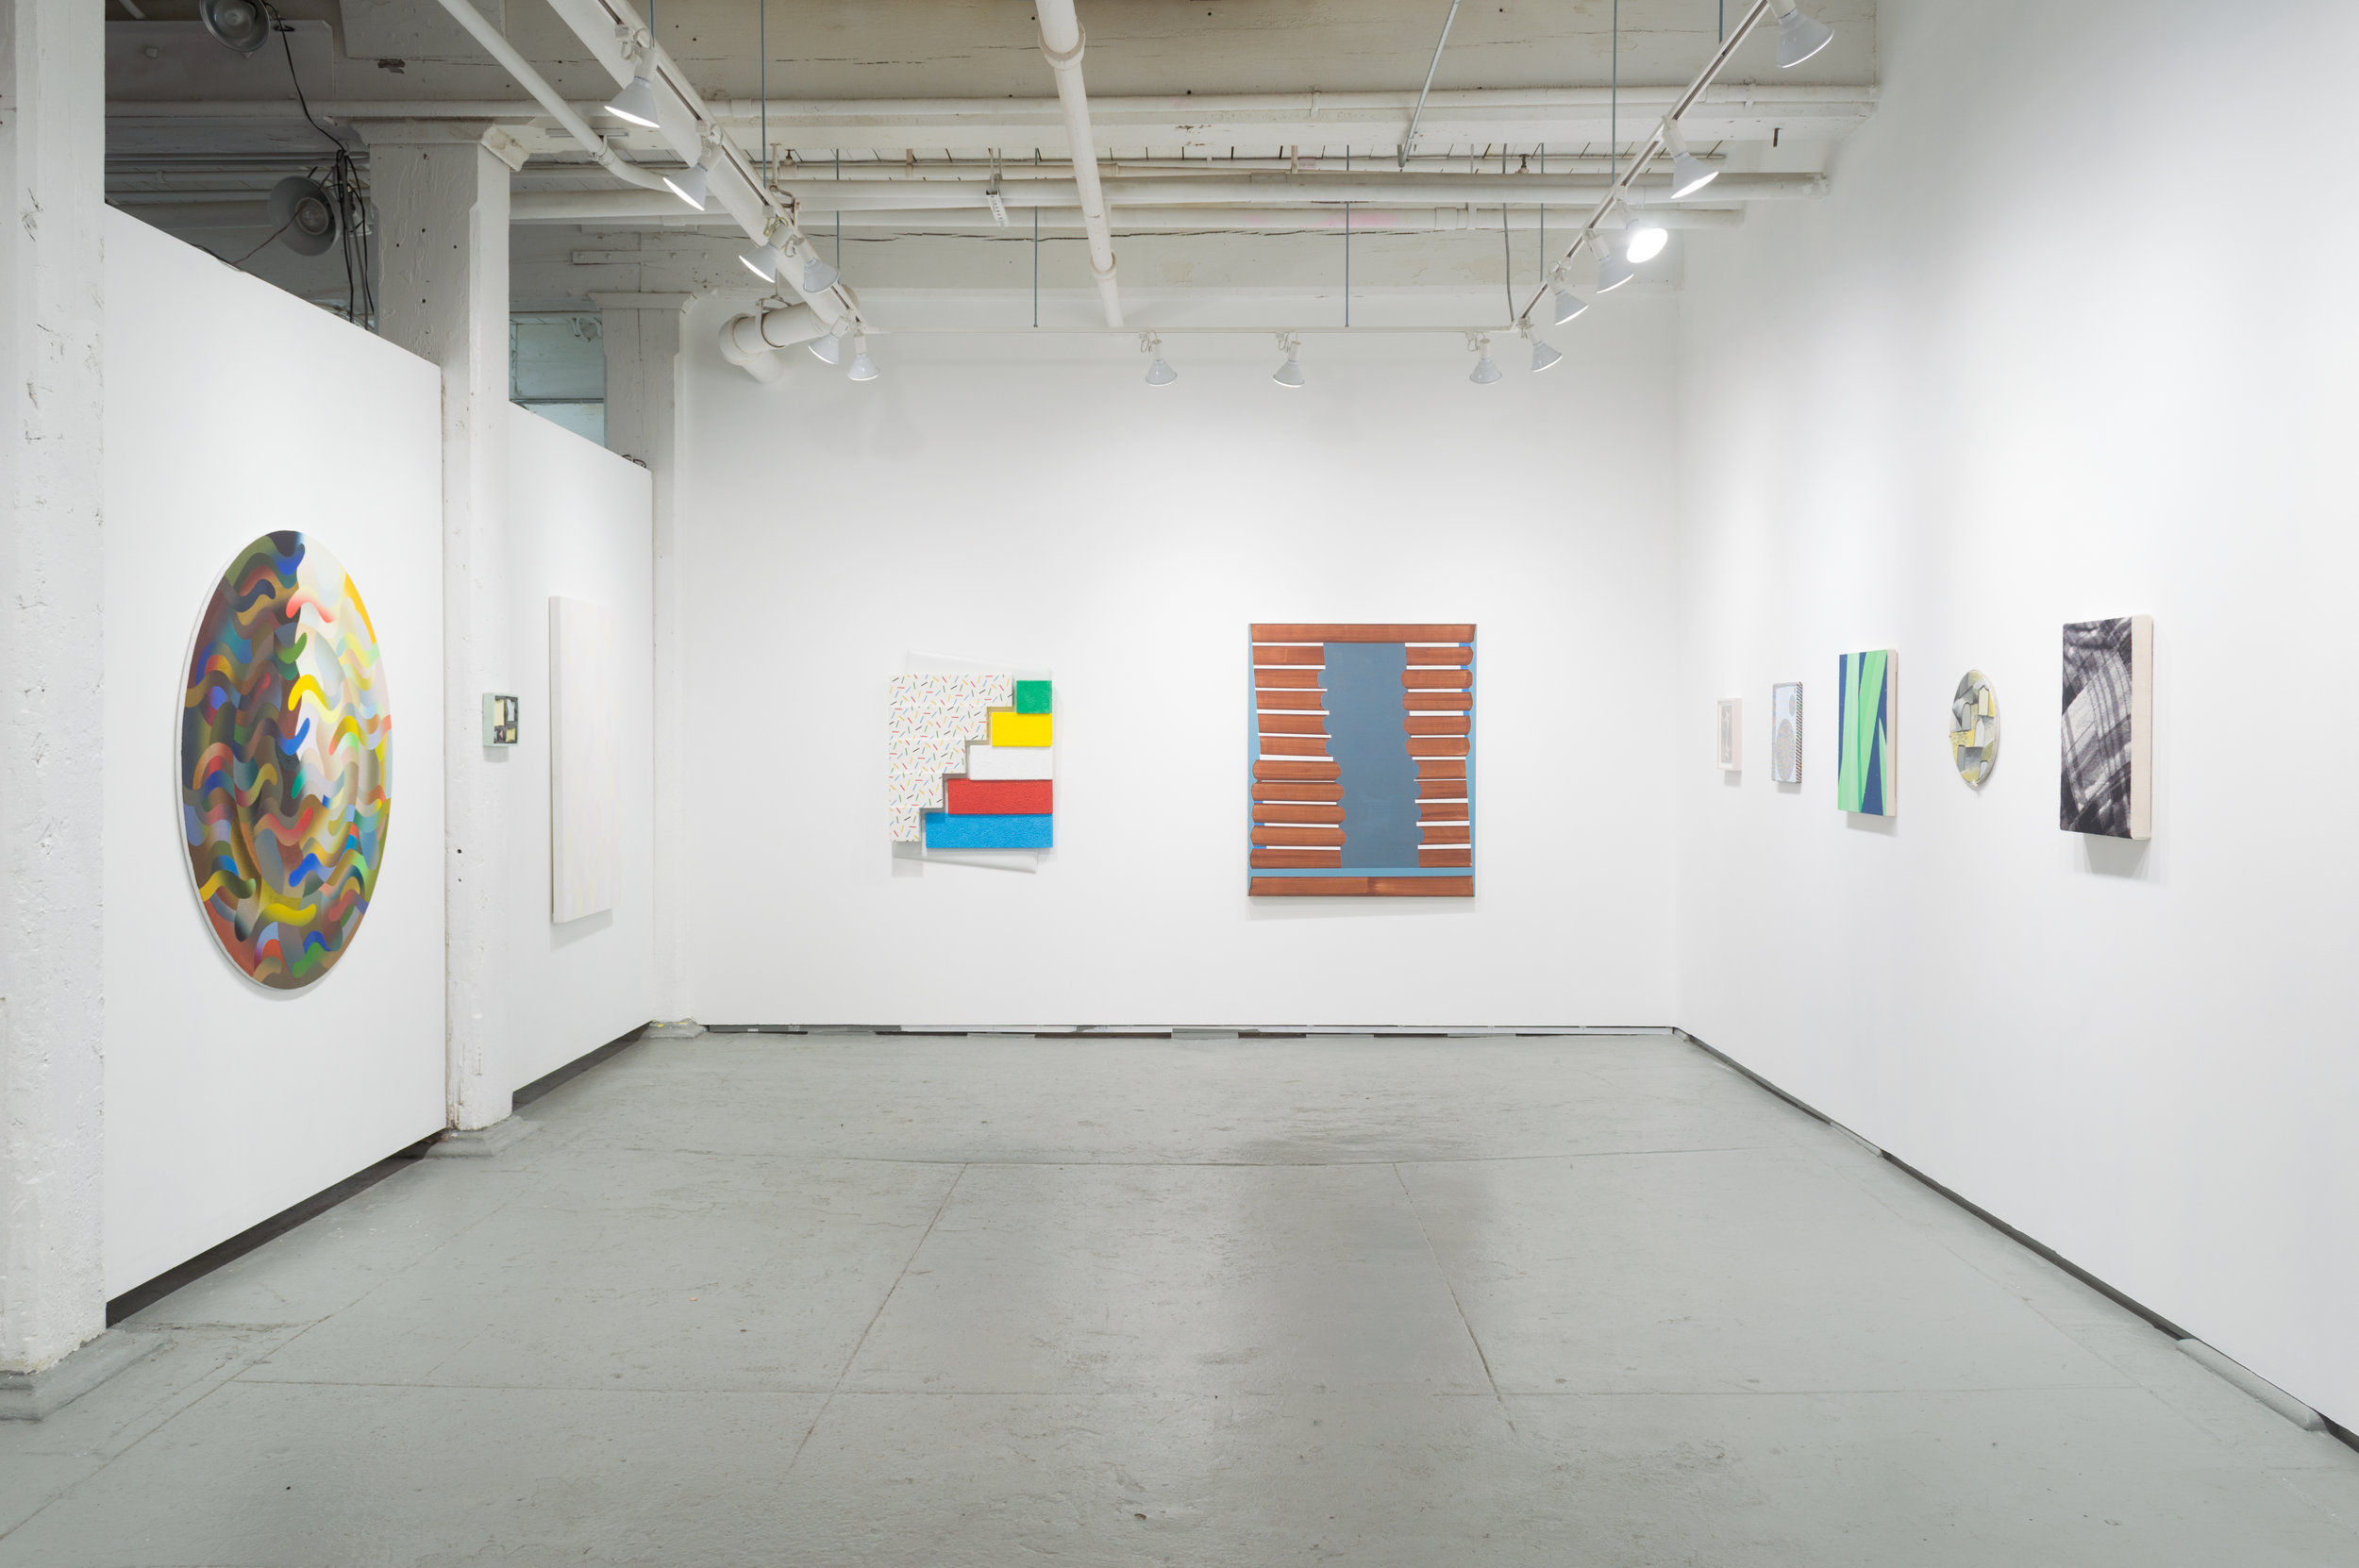 Installation view of When Geometry Smiles at Ortega y Gasset Projects in Brooklyn, NY, 2018